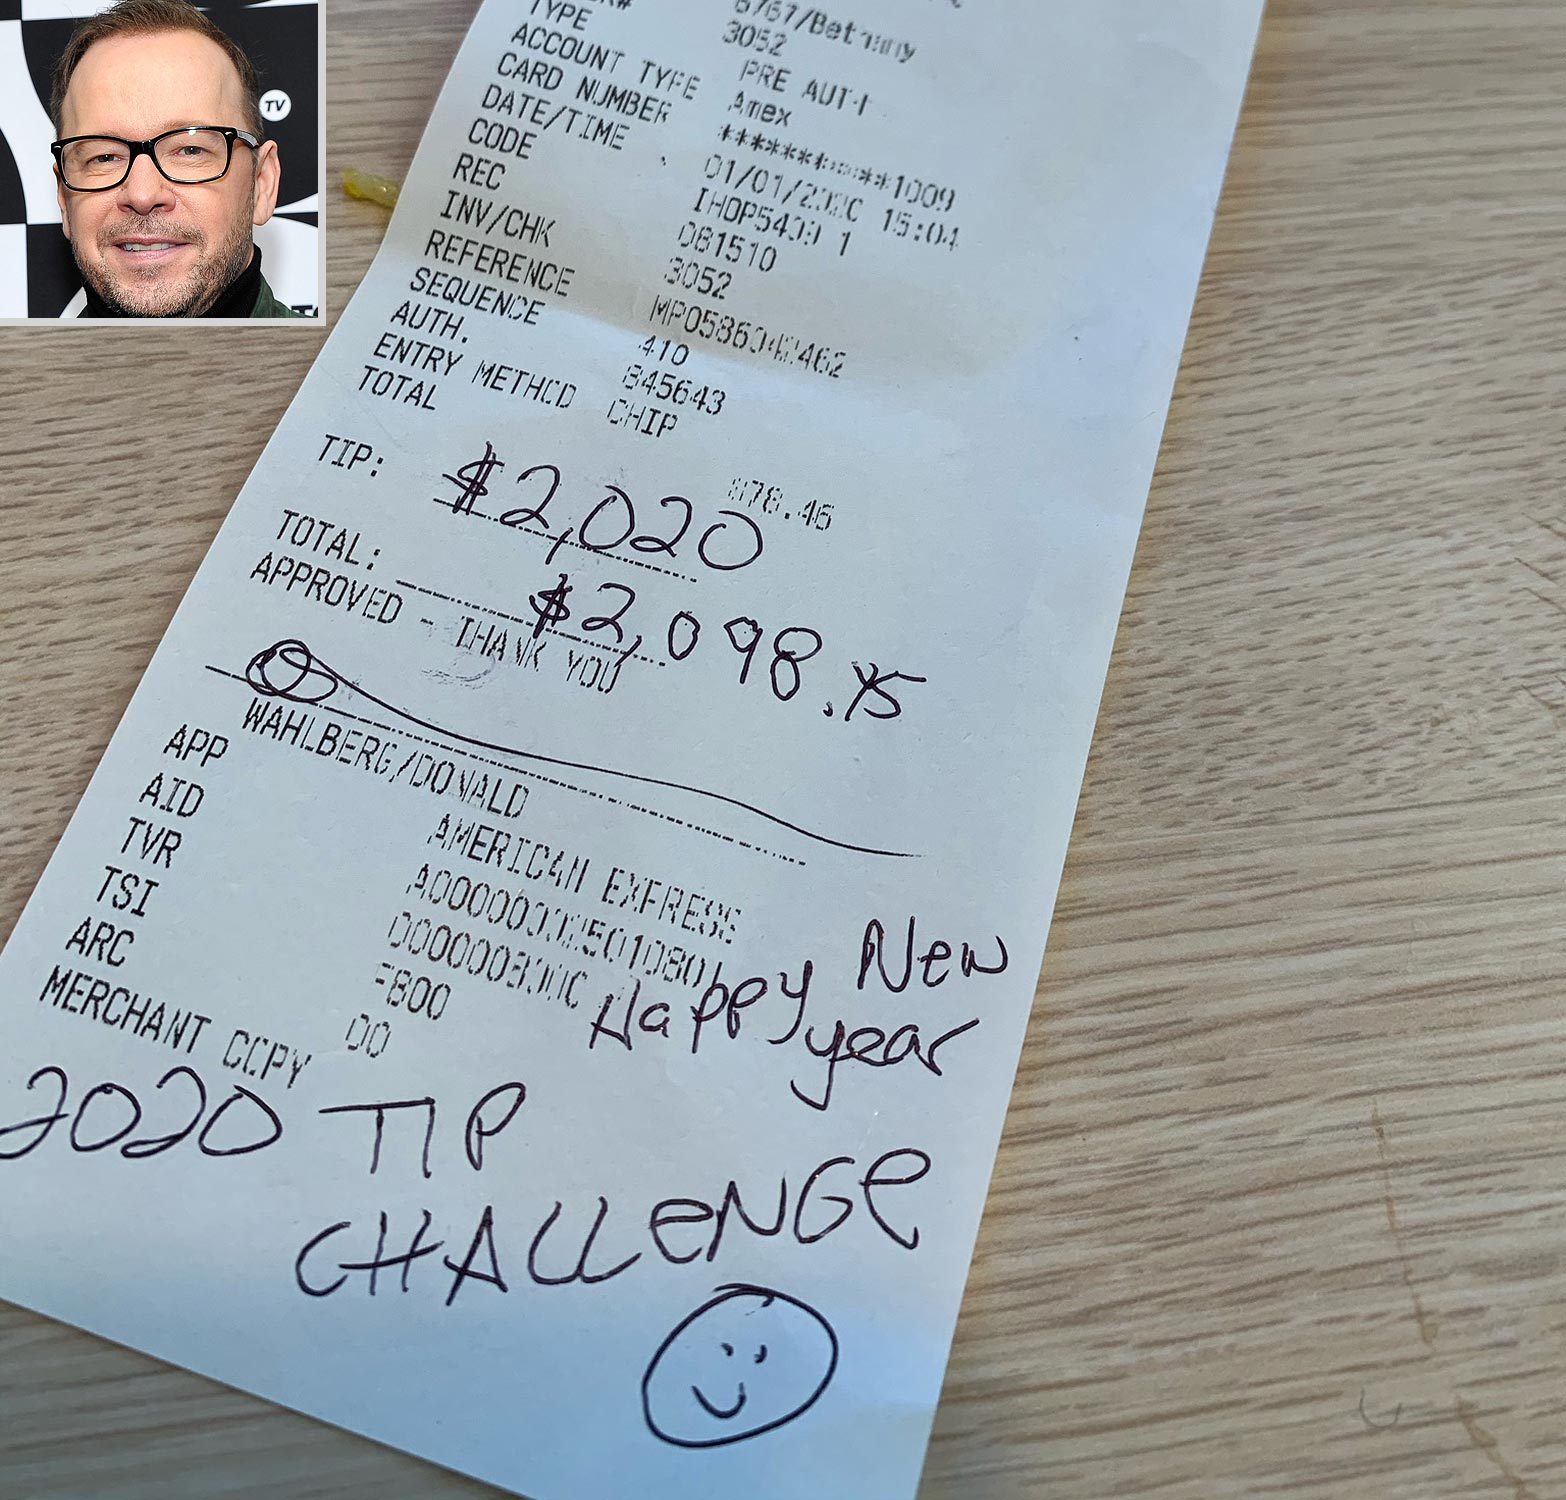 Donnie Wahlberg $2K Tipping